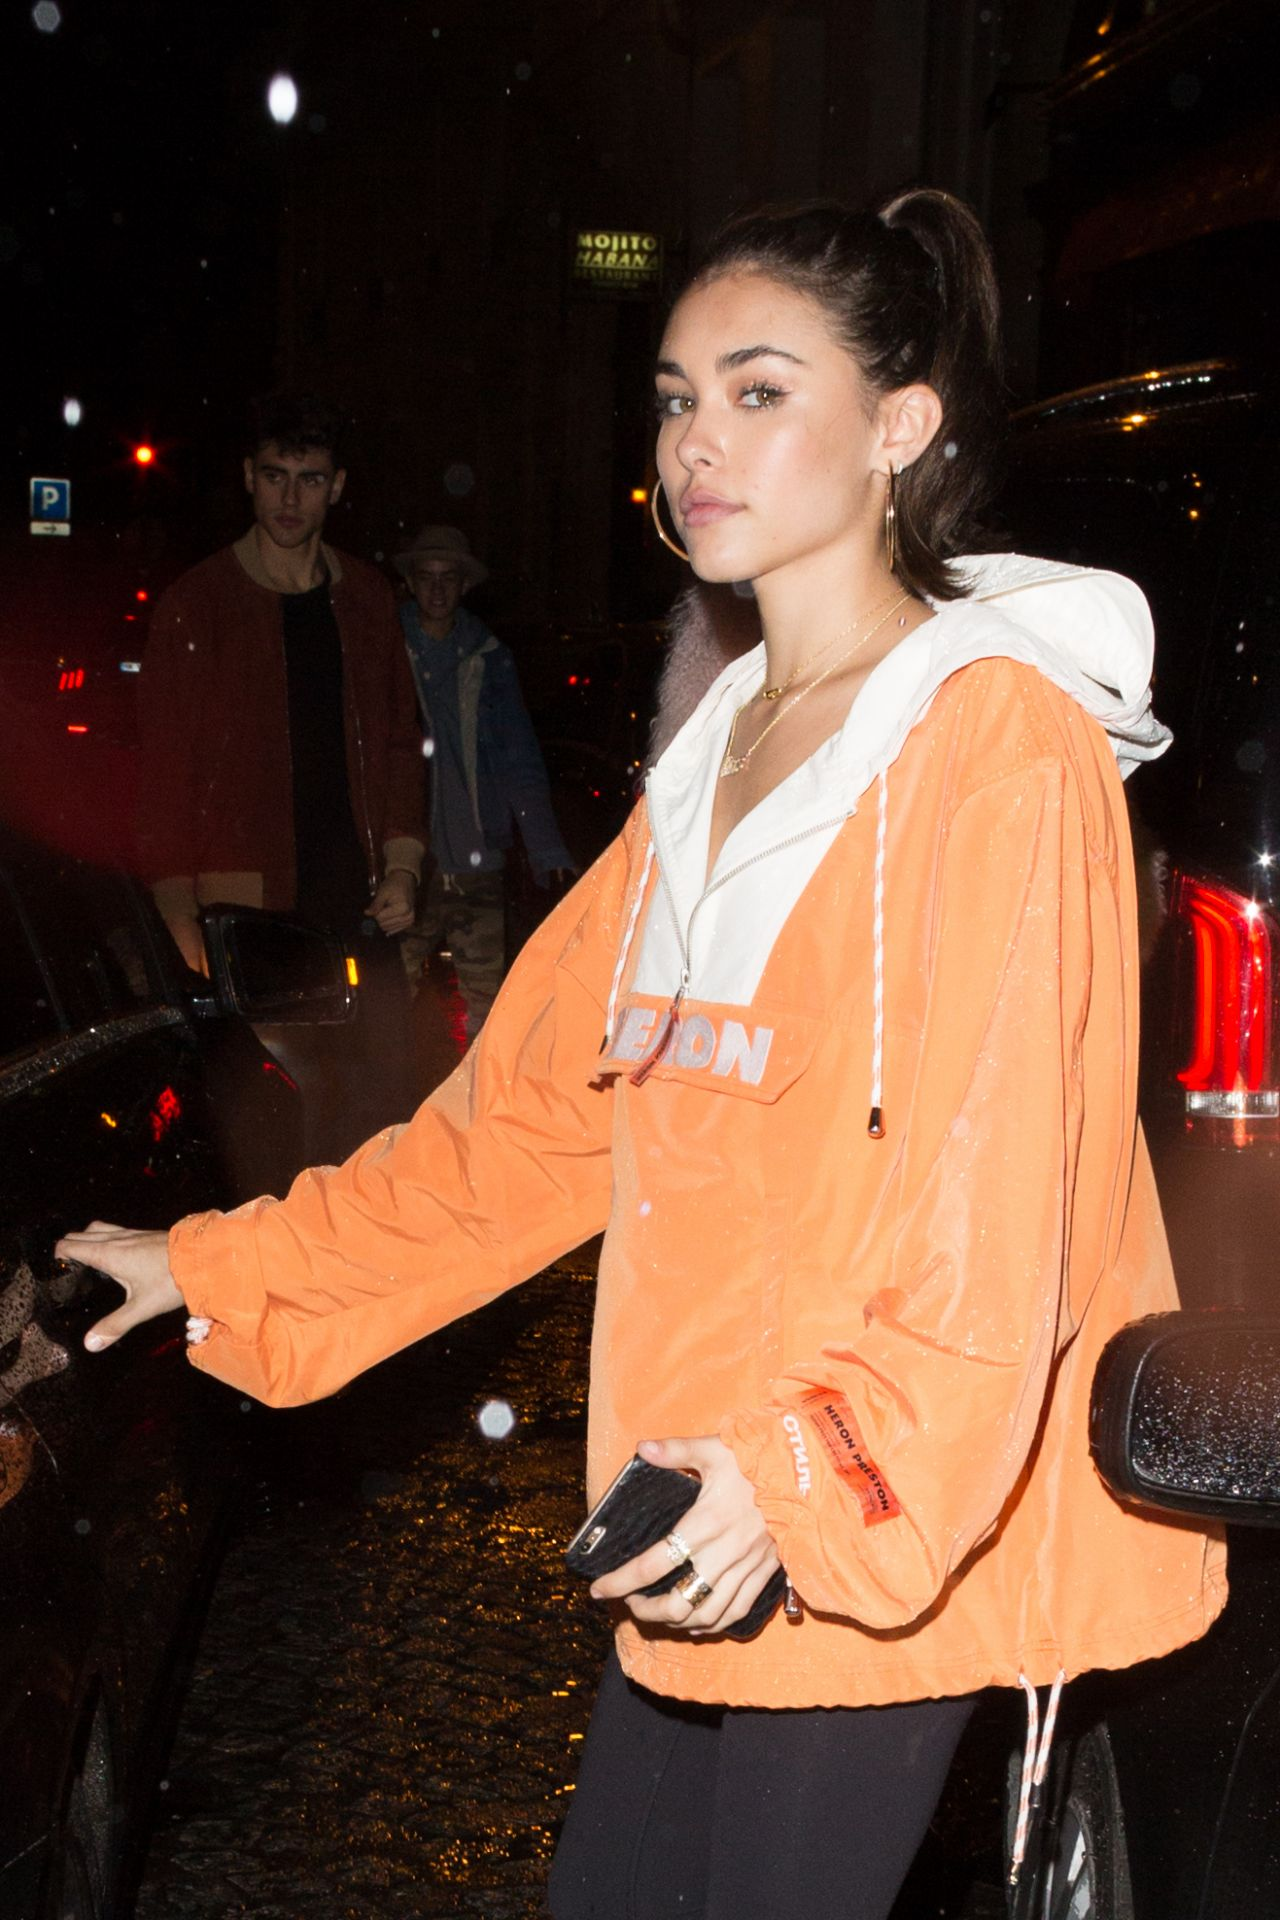 madison beer night out paris france 3 7 2017. Black Bedroom Furniture Sets. Home Design Ideas